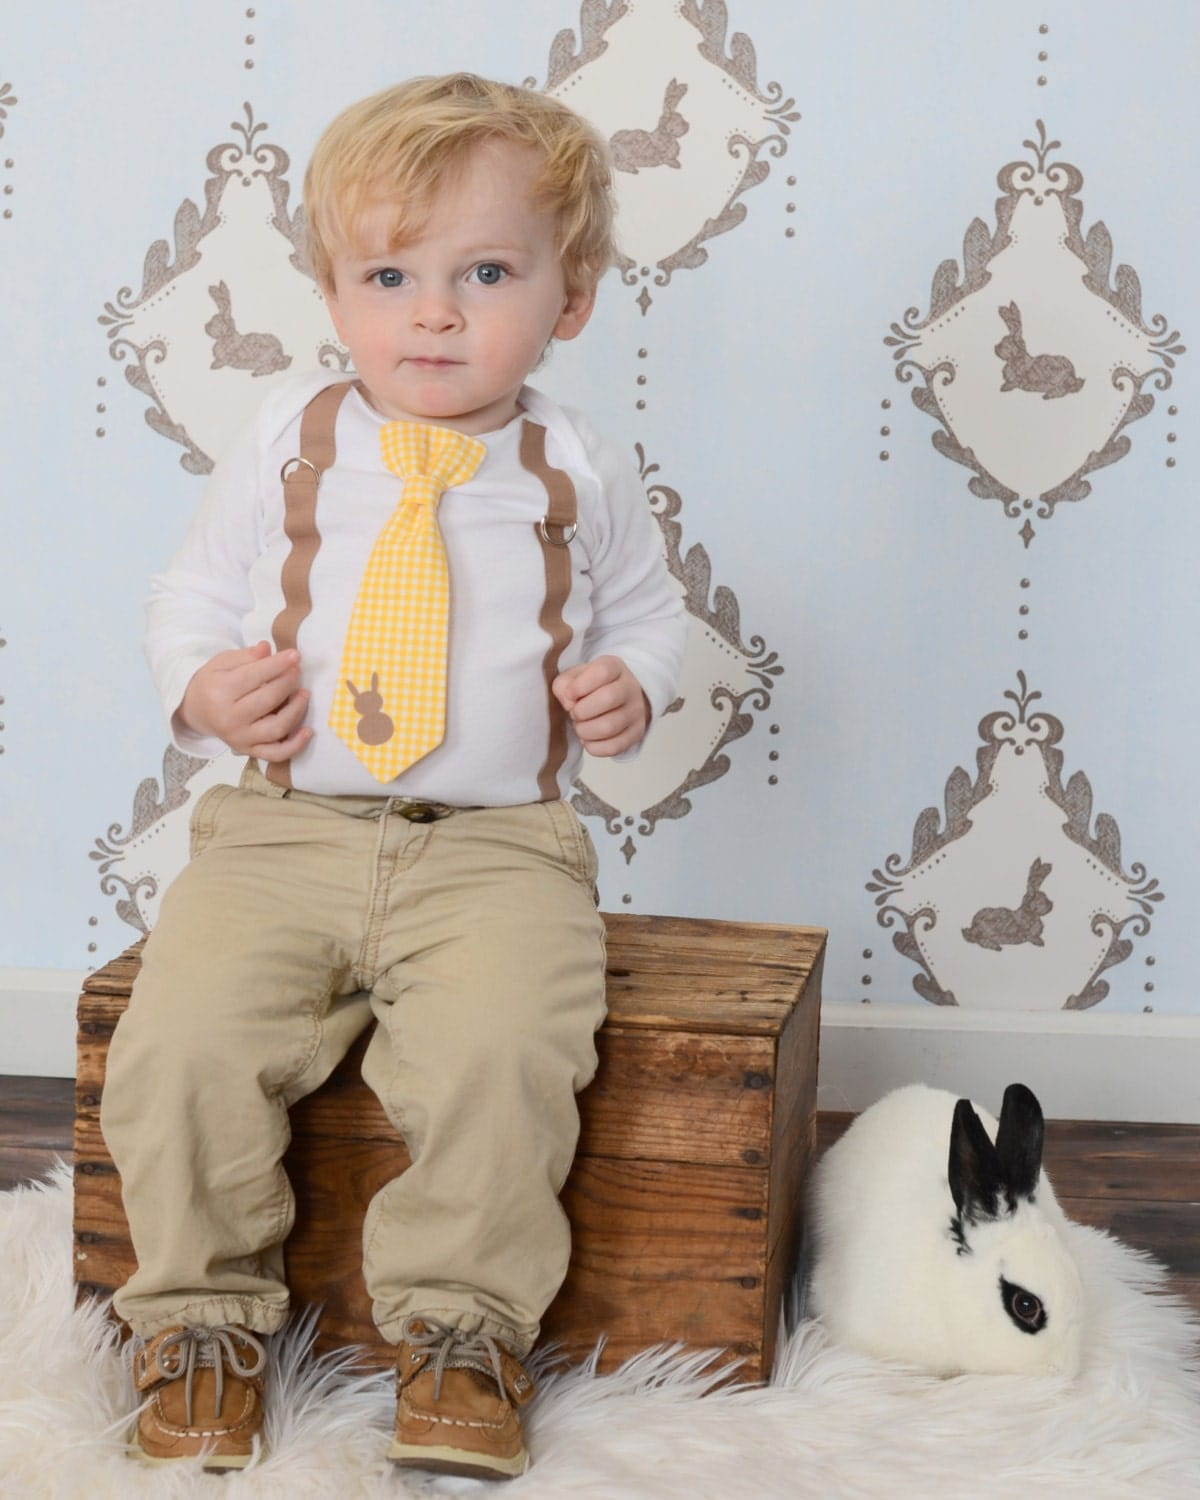 You searched for: baby boy easter! Etsy is the home to thousands of handmade, vintage, and one-of-a-kind products and gifts related to your search. No matter what you're looking for or where you are in the world, our global marketplace of sellers can help you find unique and affordable options. Let's get started!